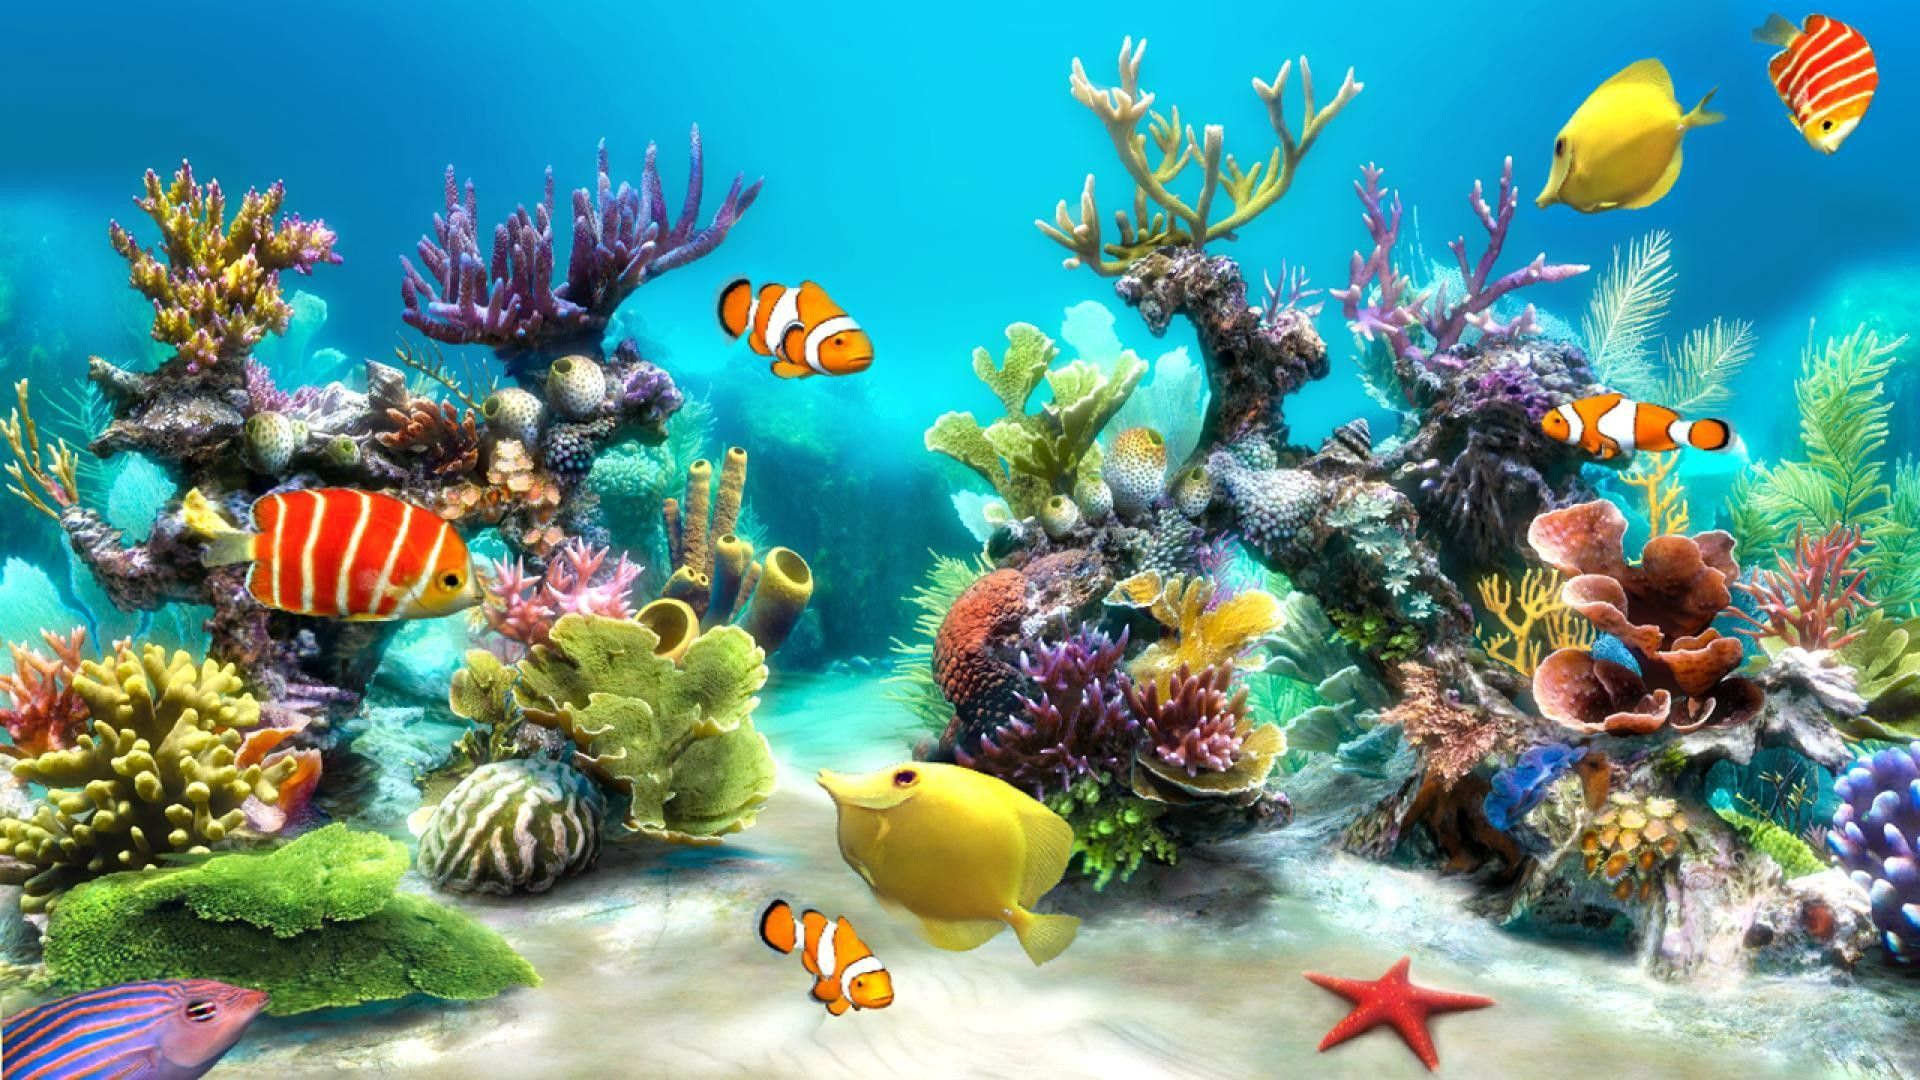 3d Fish Tank Wallpaper For Pc Aquarium Live Wallpaper Wallpaper Pc Live Wallpapers